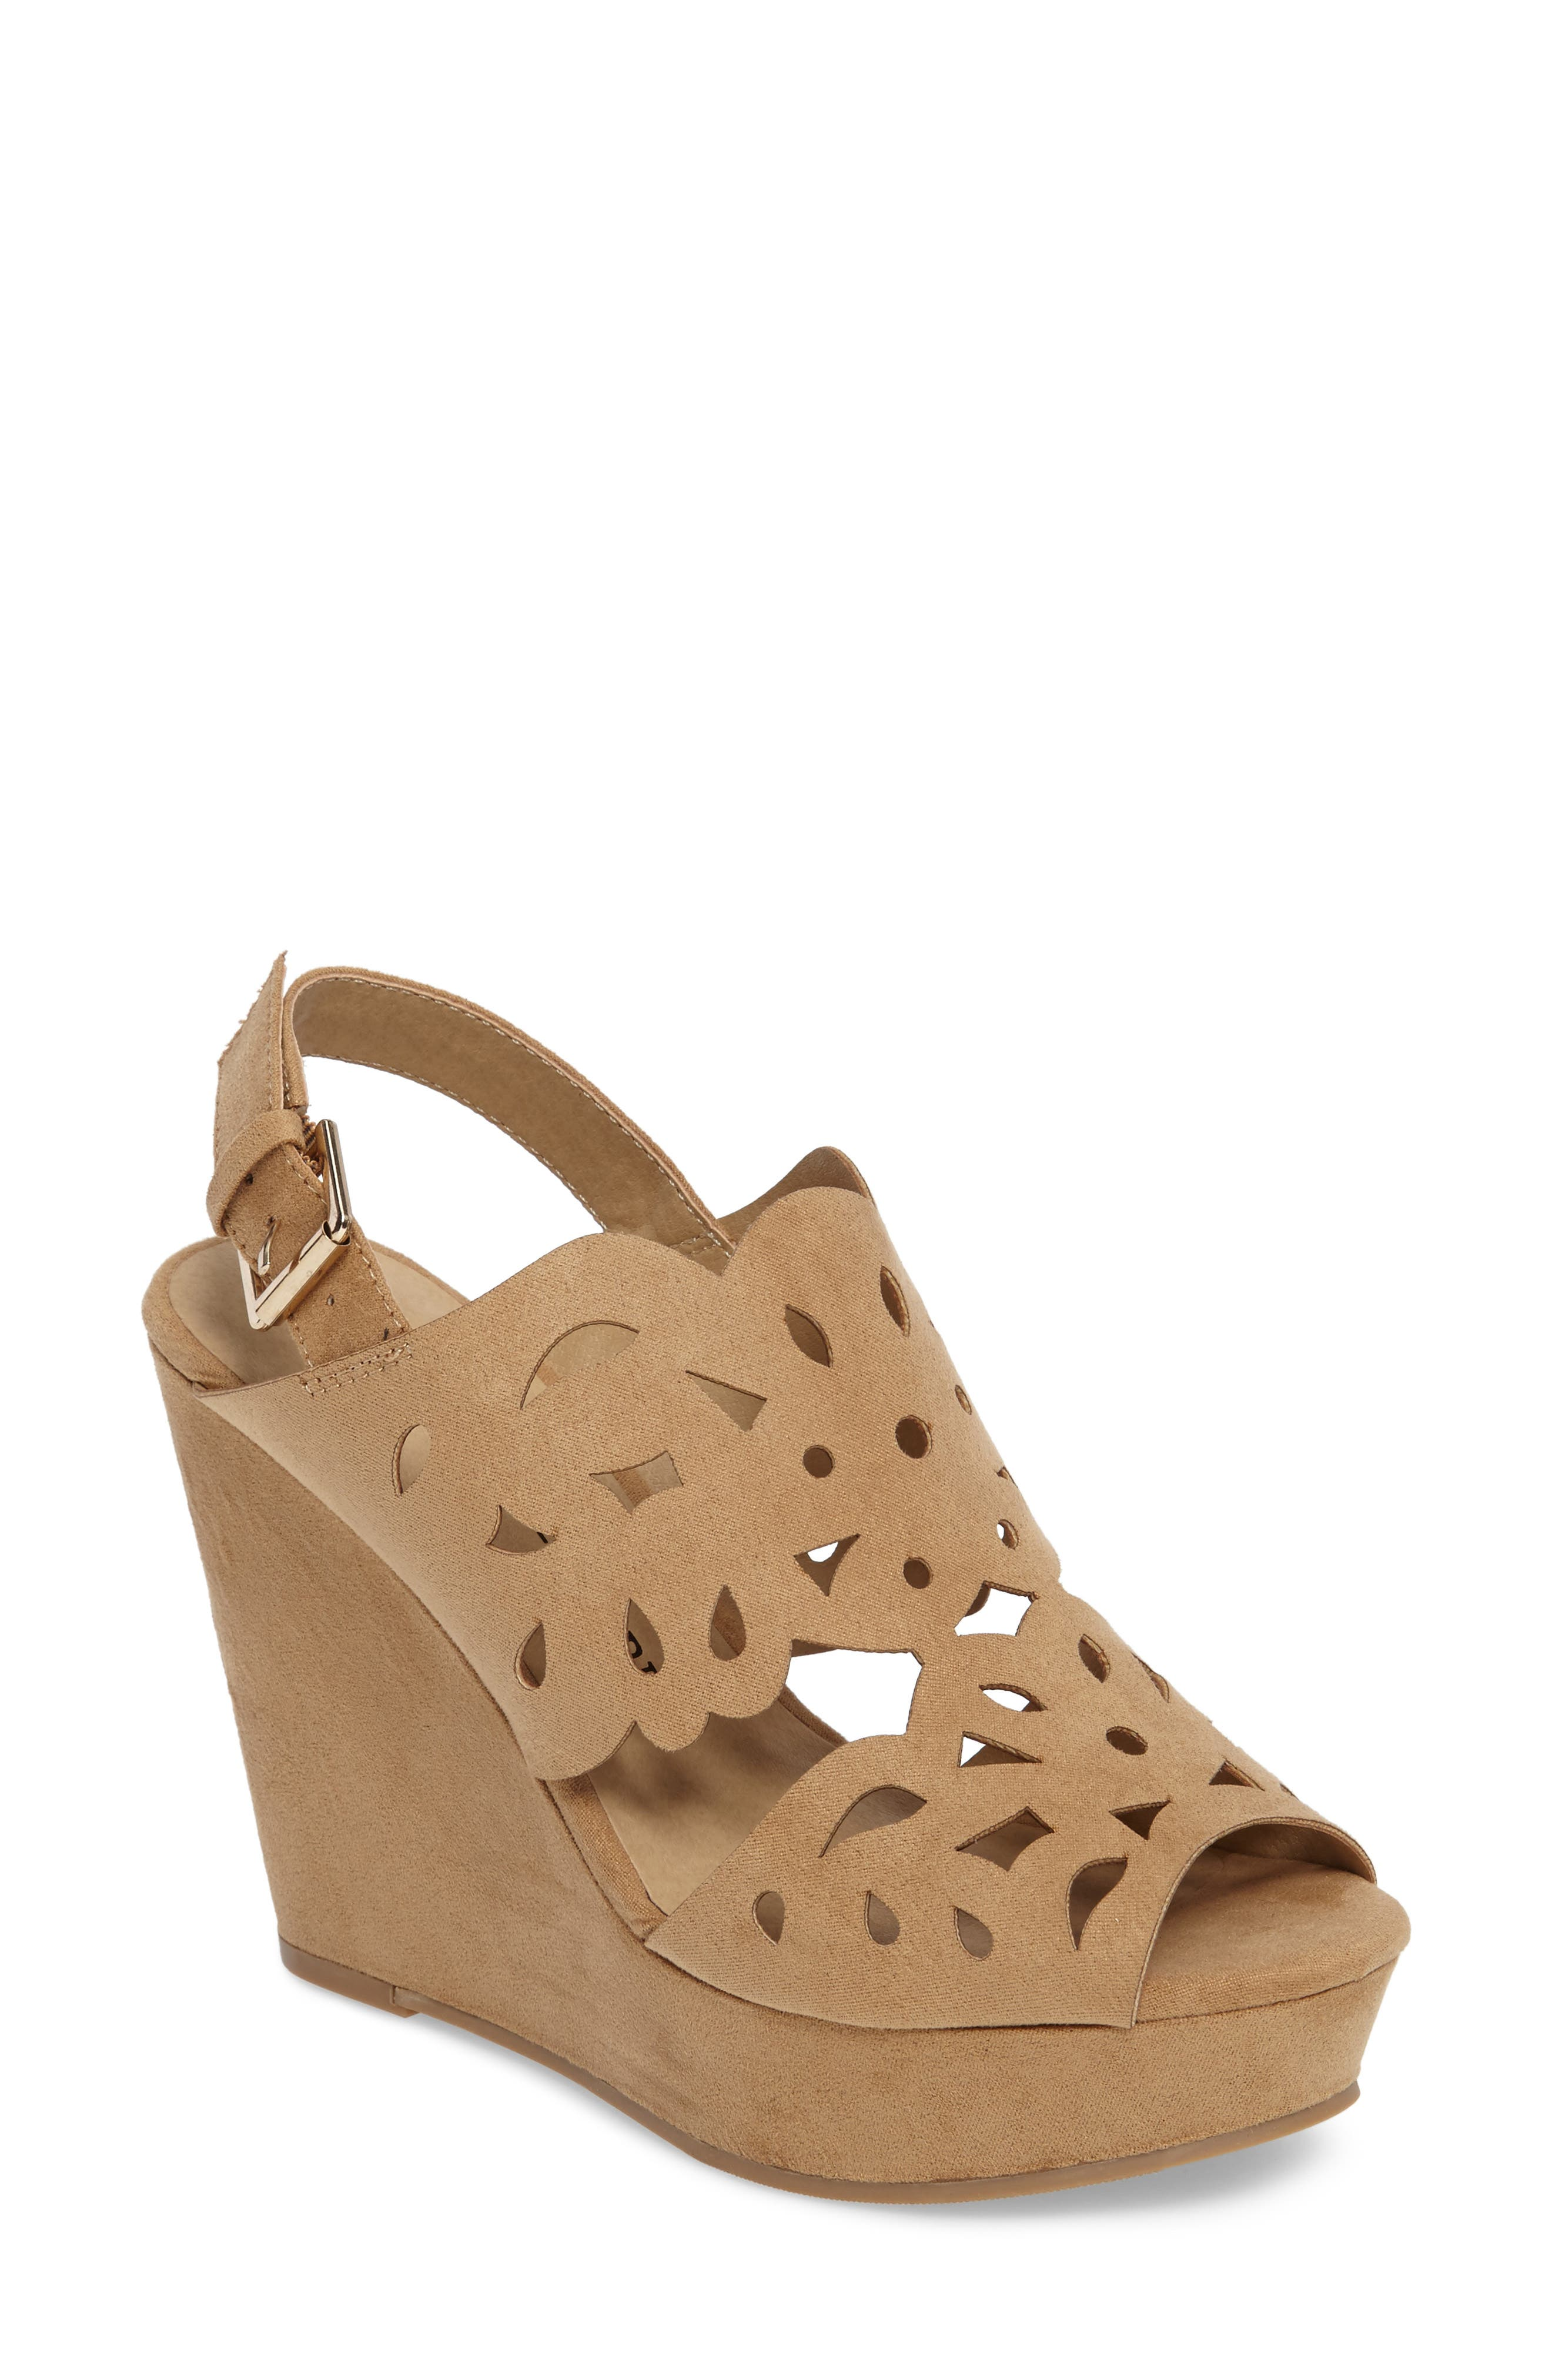 Alternate Image 1 Selected - Chinese Laundry In Love Wedge Sandal (Women)